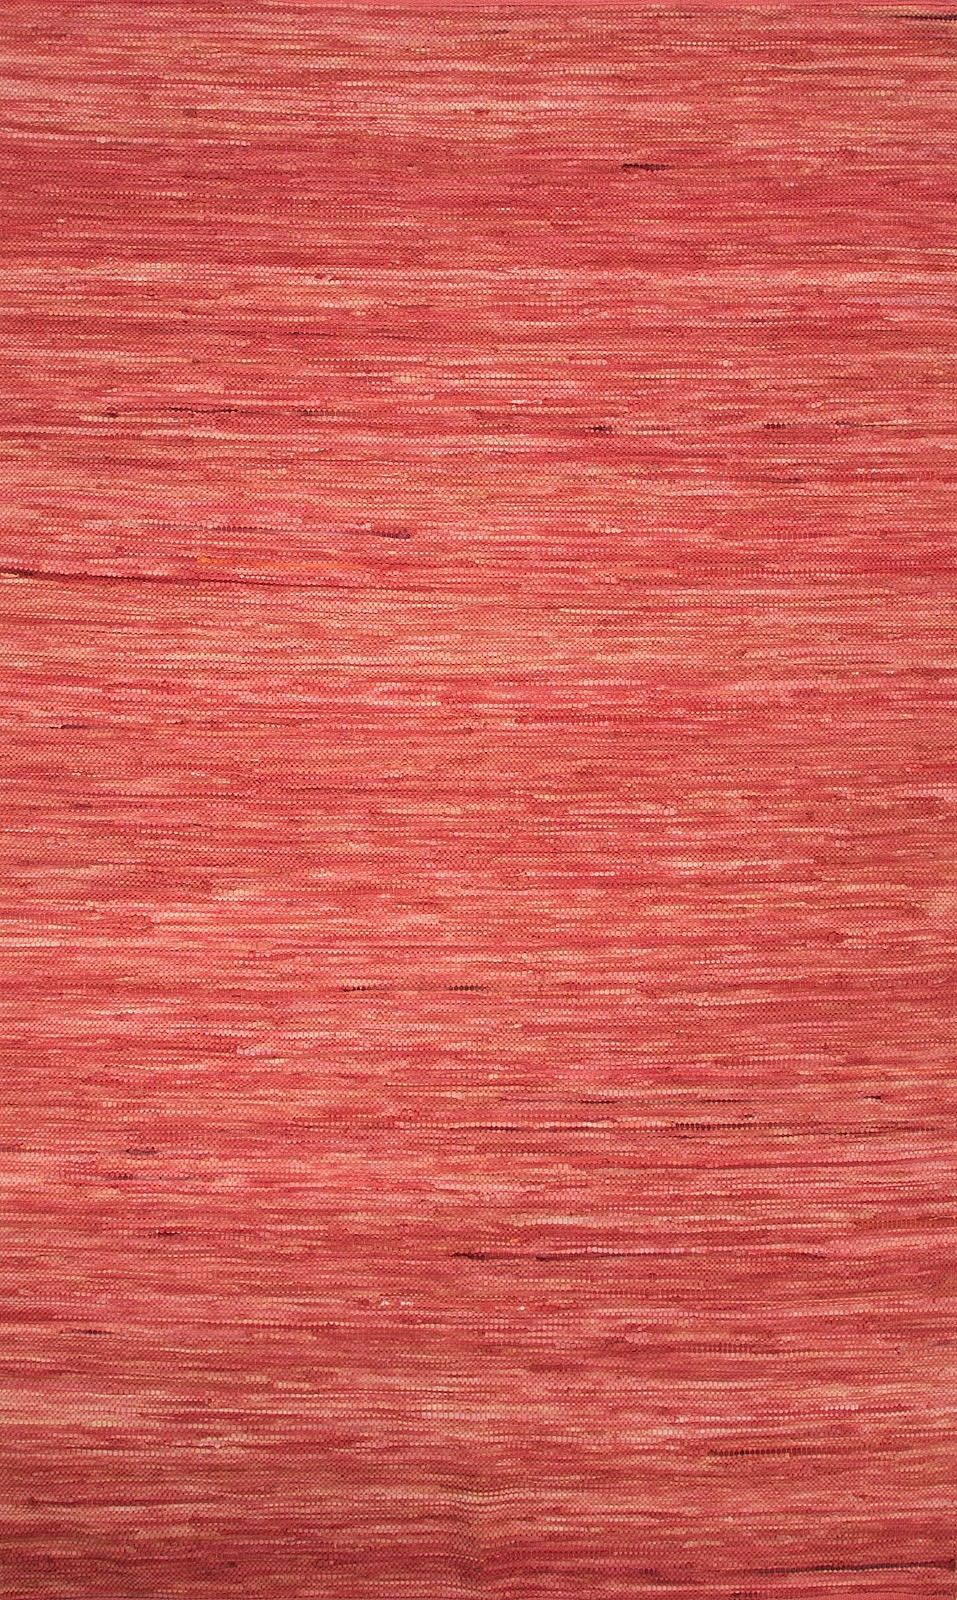 jaipur ann solid/striped area rug collection